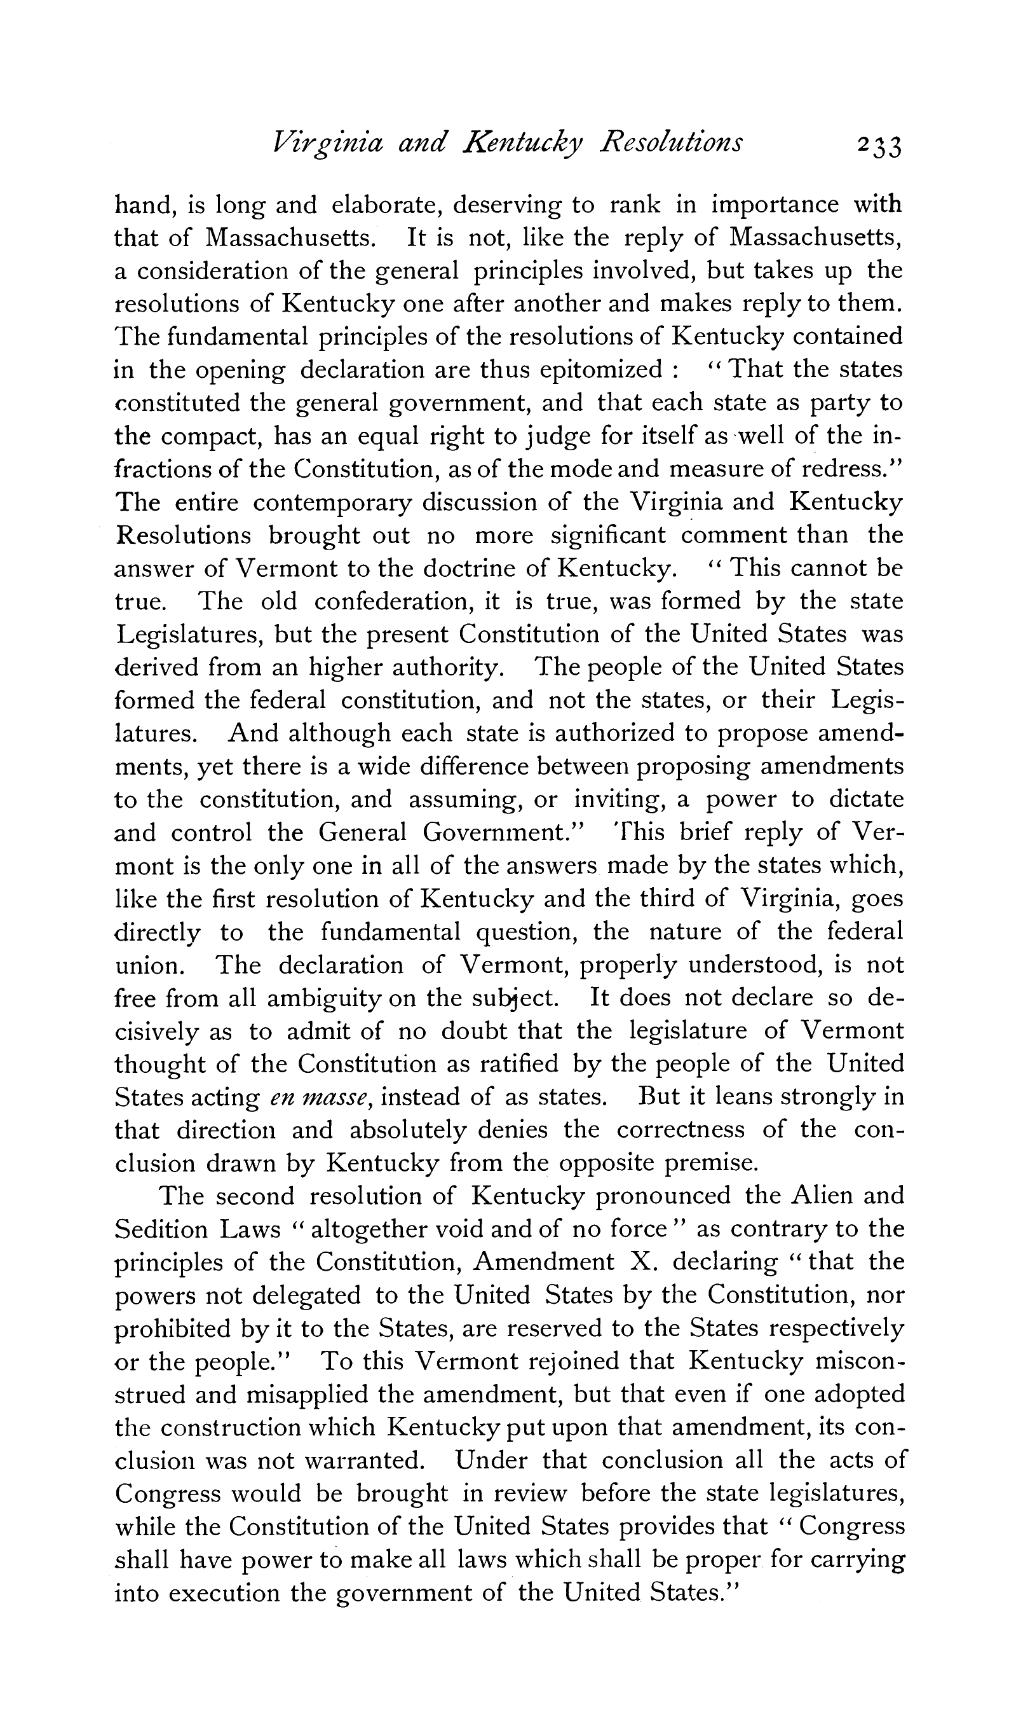 kentucky virginia resolutions essay The sedition act and the virginia and kentucky resolutions  the virginia and kentucky resolutions it might be said that in politics, as in physics, every action has an equal and opposite reaction  virginia and kentucky the authors of these famous resolutions were none other than james madison and thomas jefferson thomas ladenburg.